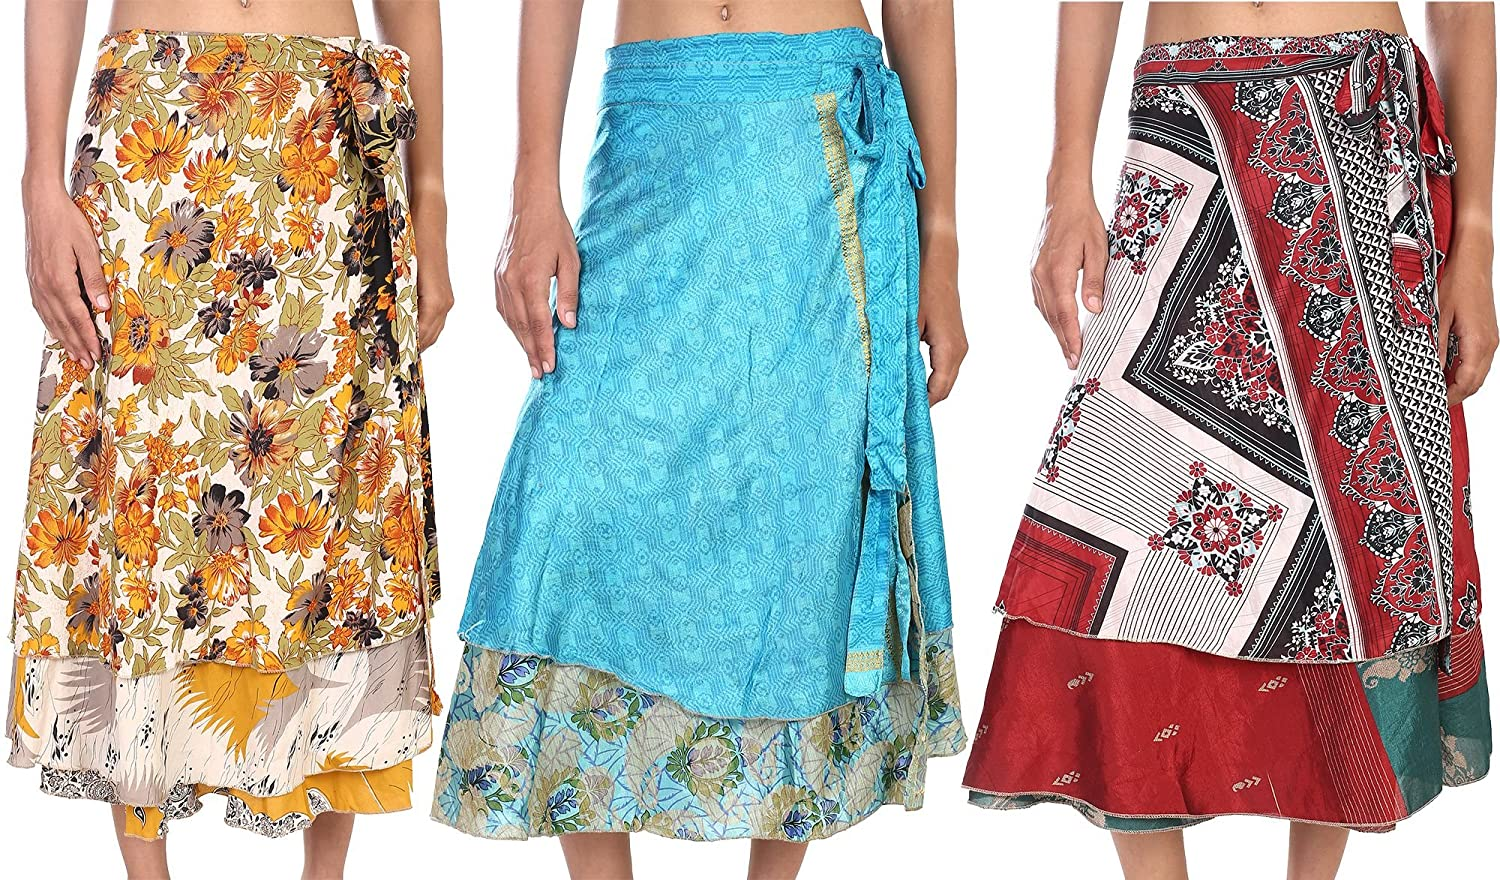 Watch - Wrap indian skirt how to wear video